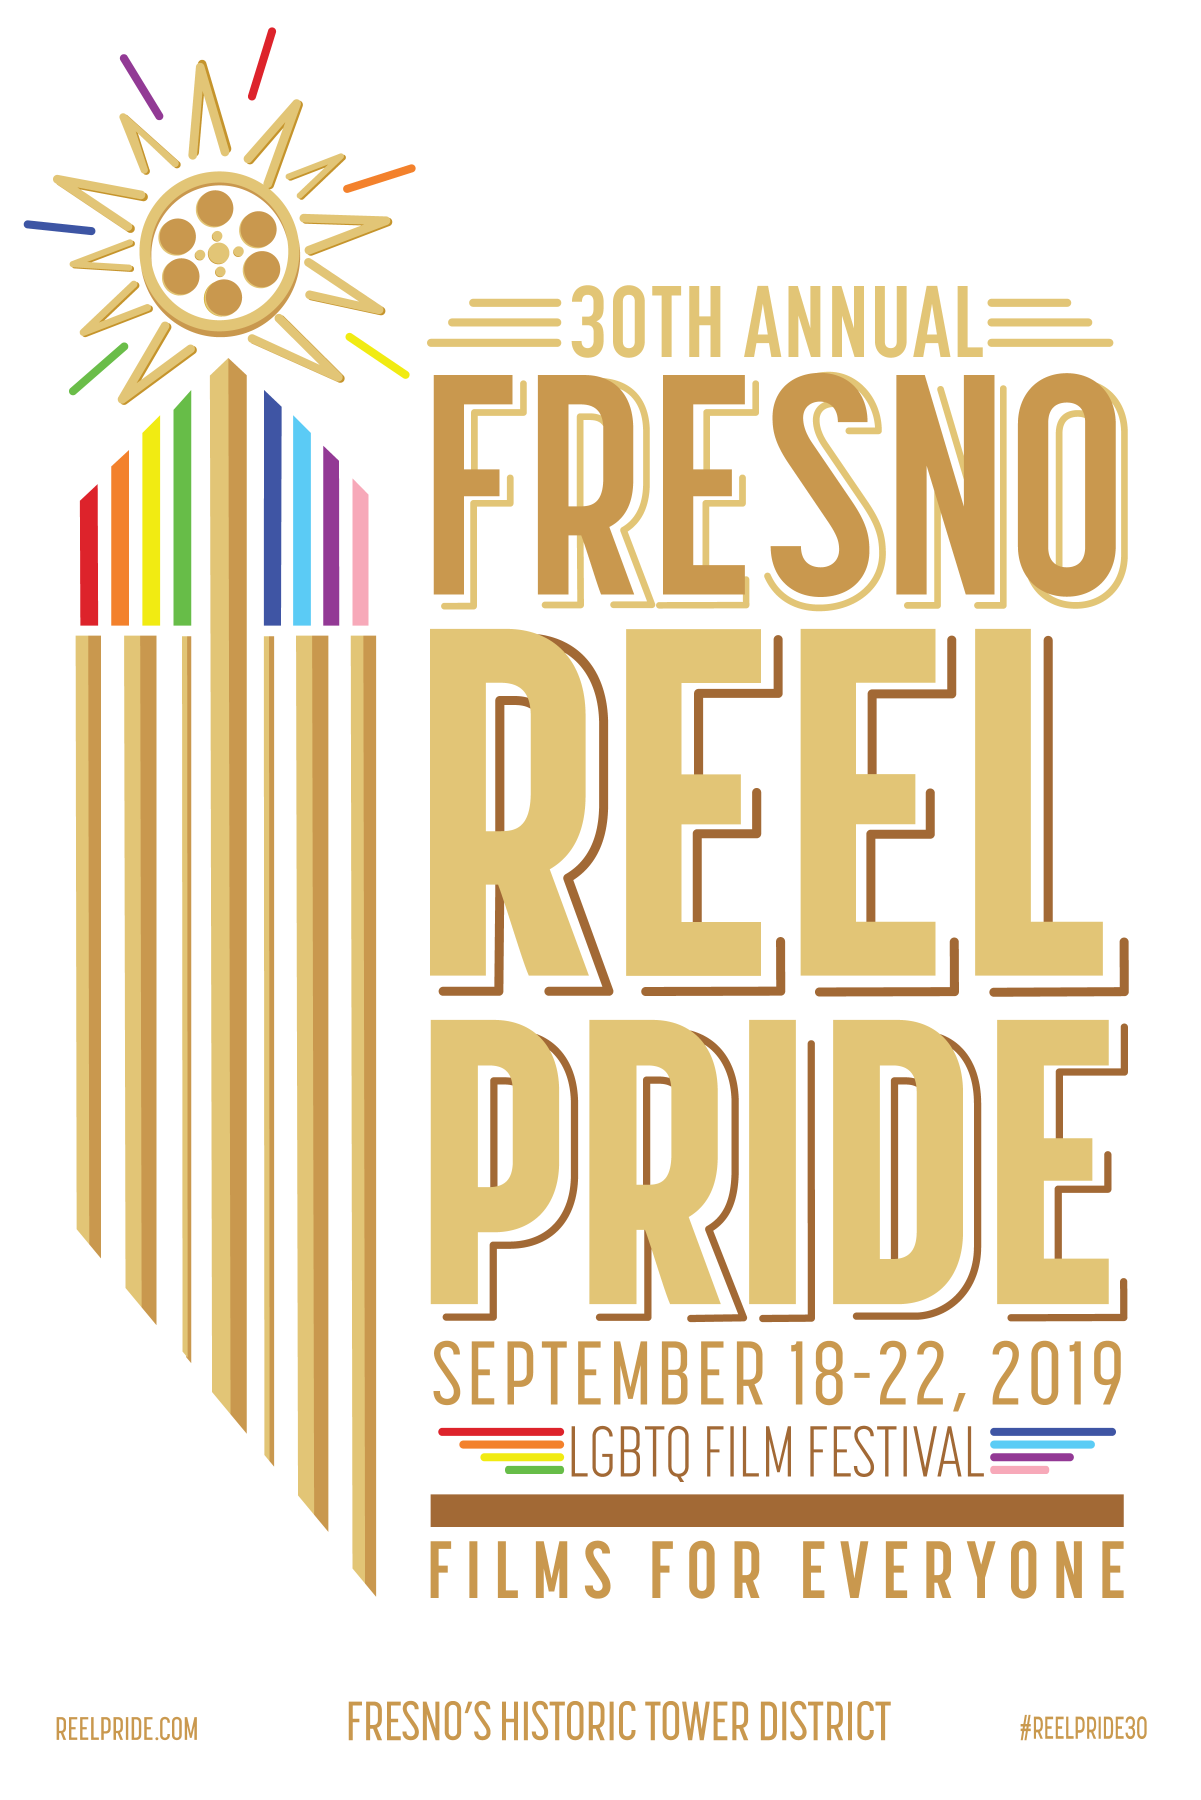 FILMS FOR EVERYONE! - Every year, it is our goal to bring a wide array of LGBTQ cinema and entertainment home to the Central Valley. With new direction, bold new ideas, and a fresh outlook, we're proud to bring this annual film festival to the community – and we can't wait to see you in September!The 30th Annual Fresno Reel Pride LGBTQ Film Festival begins Wednesday, September 18, 2019.